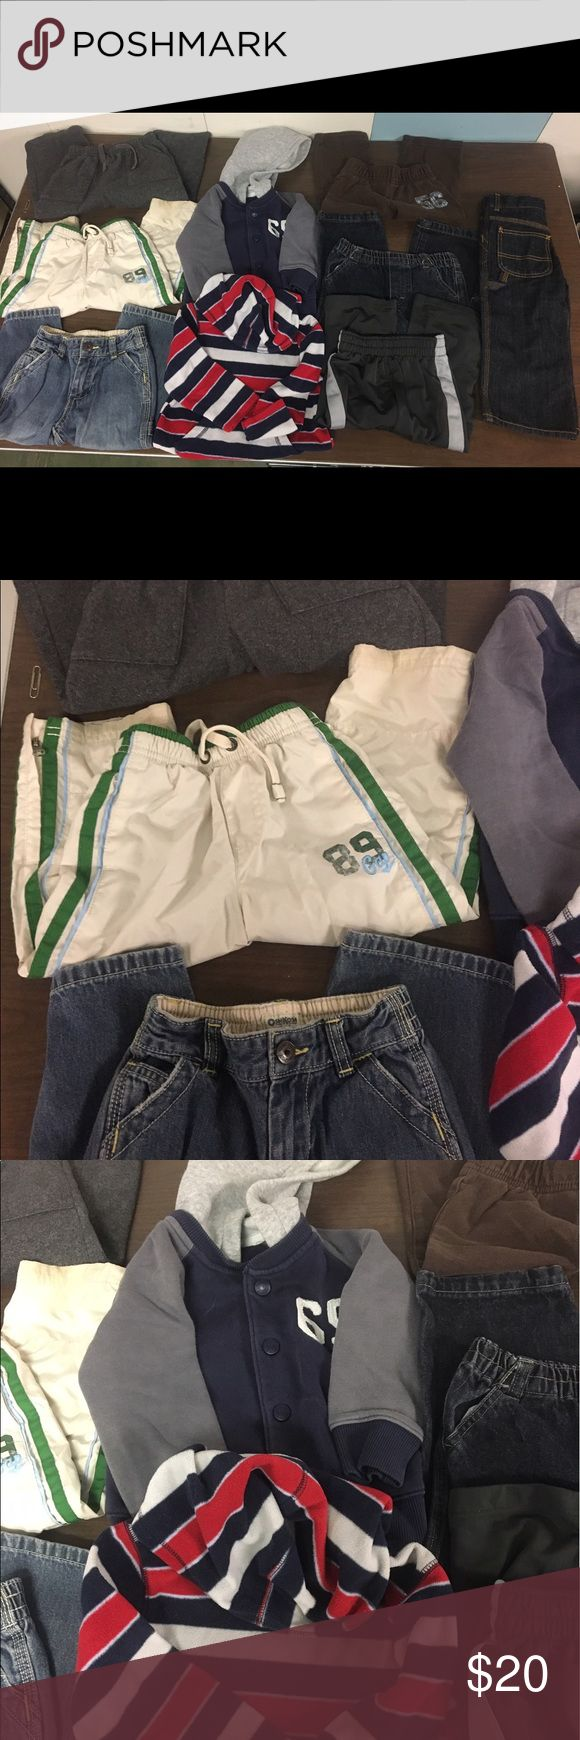 Lot of boys clothing all size 2T 7 pairs of pants, 4 are sweatpants/windpants style, 3 are jeans.  Also included are a light button up jacket with hood and a fleece pullover with hood.   All the clothes are stain free and no holes.  Name brand items, Carter/Oshkosh, etc.    smoke free home. Other